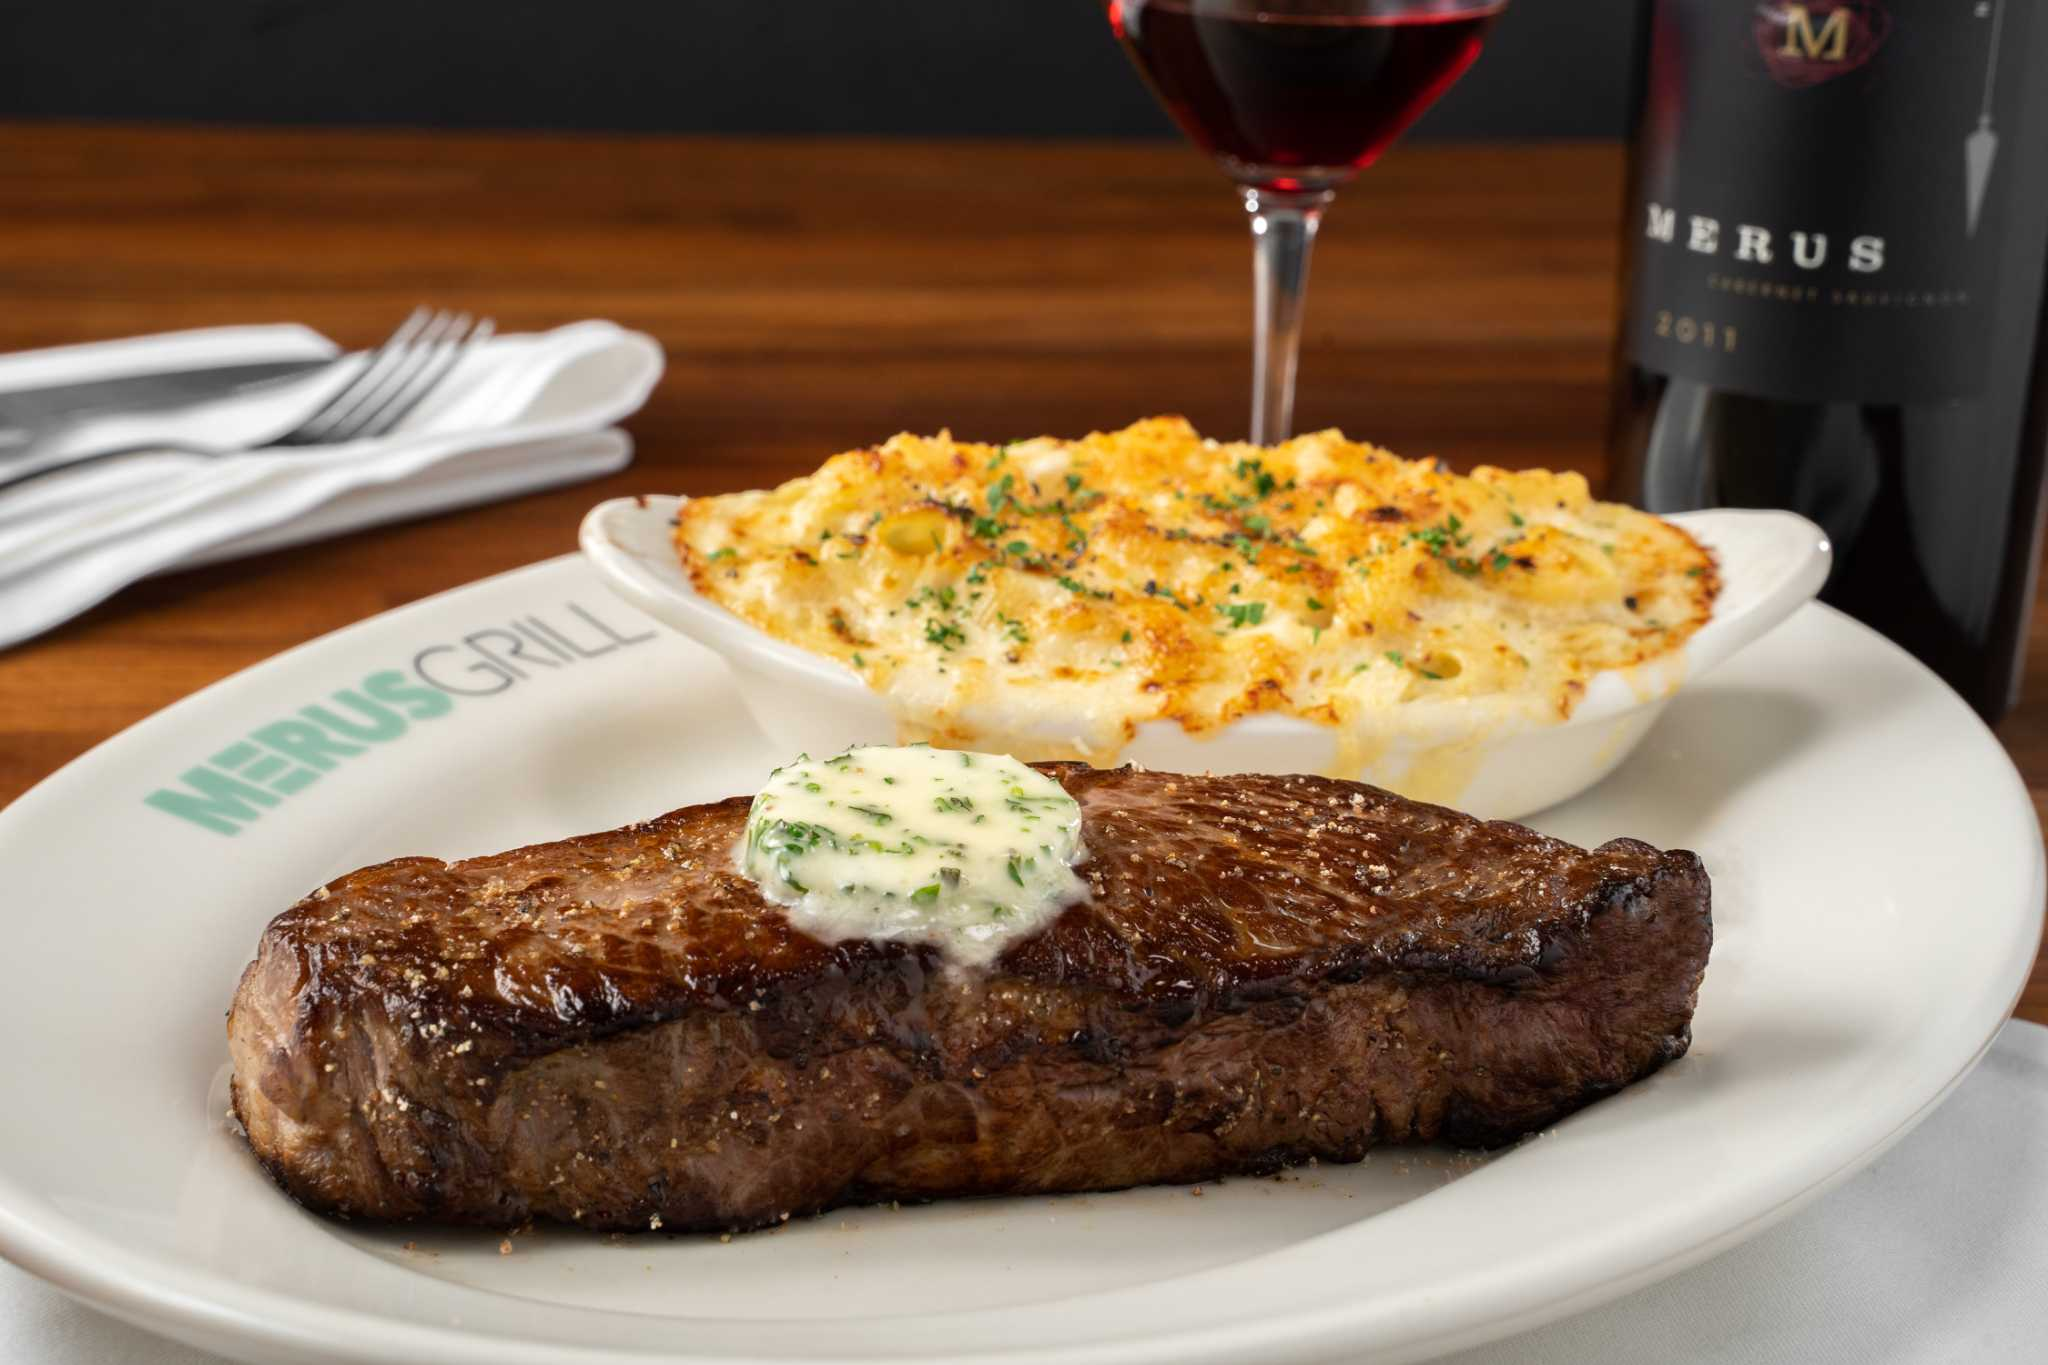 J. Alexander's returns to Houston with Merus Grill